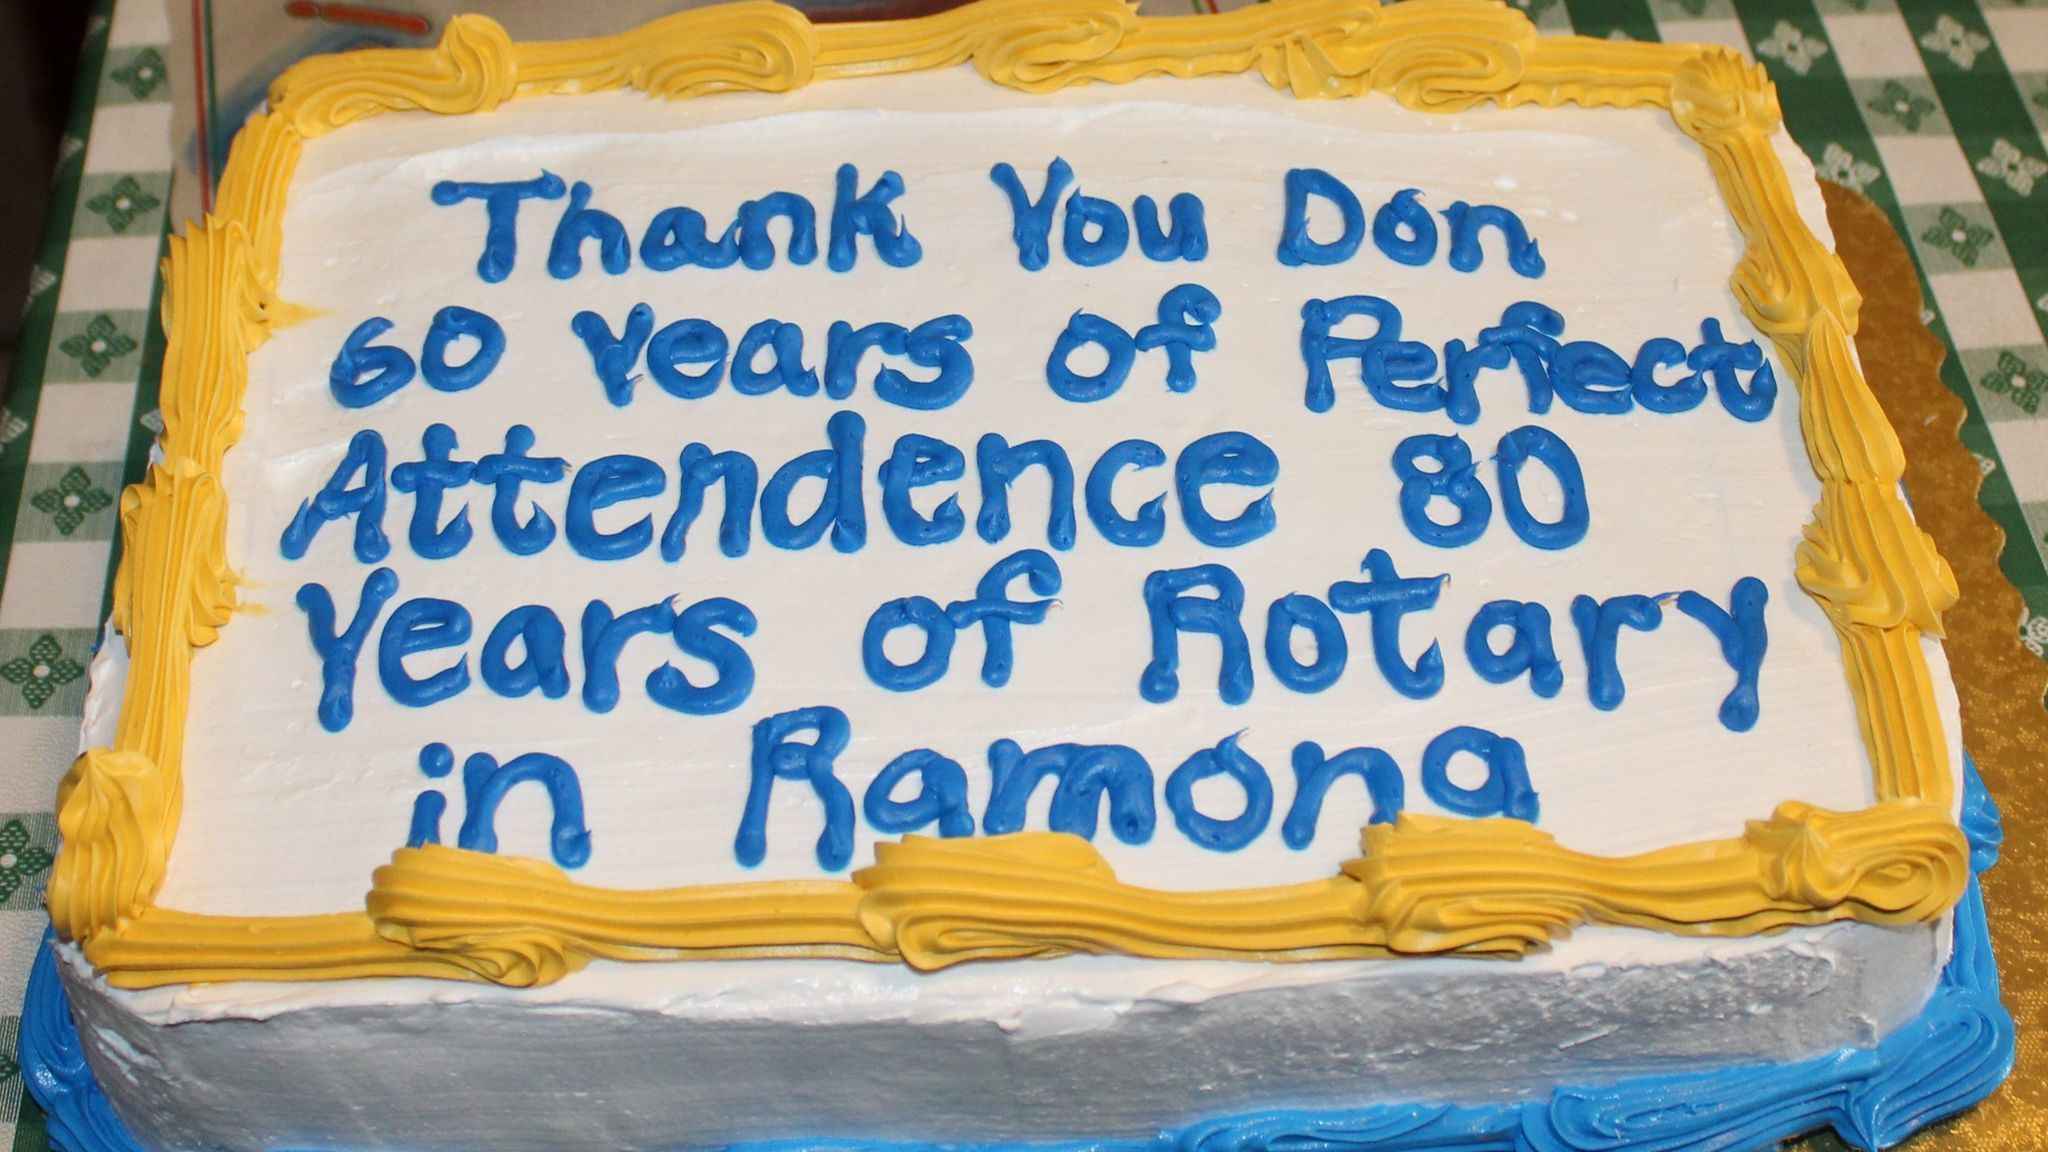 Cake celebrates two anniversaries: Ramona Rotary Club's 80th year and Rotarian Don Owen's 60 years of perfect attendance.